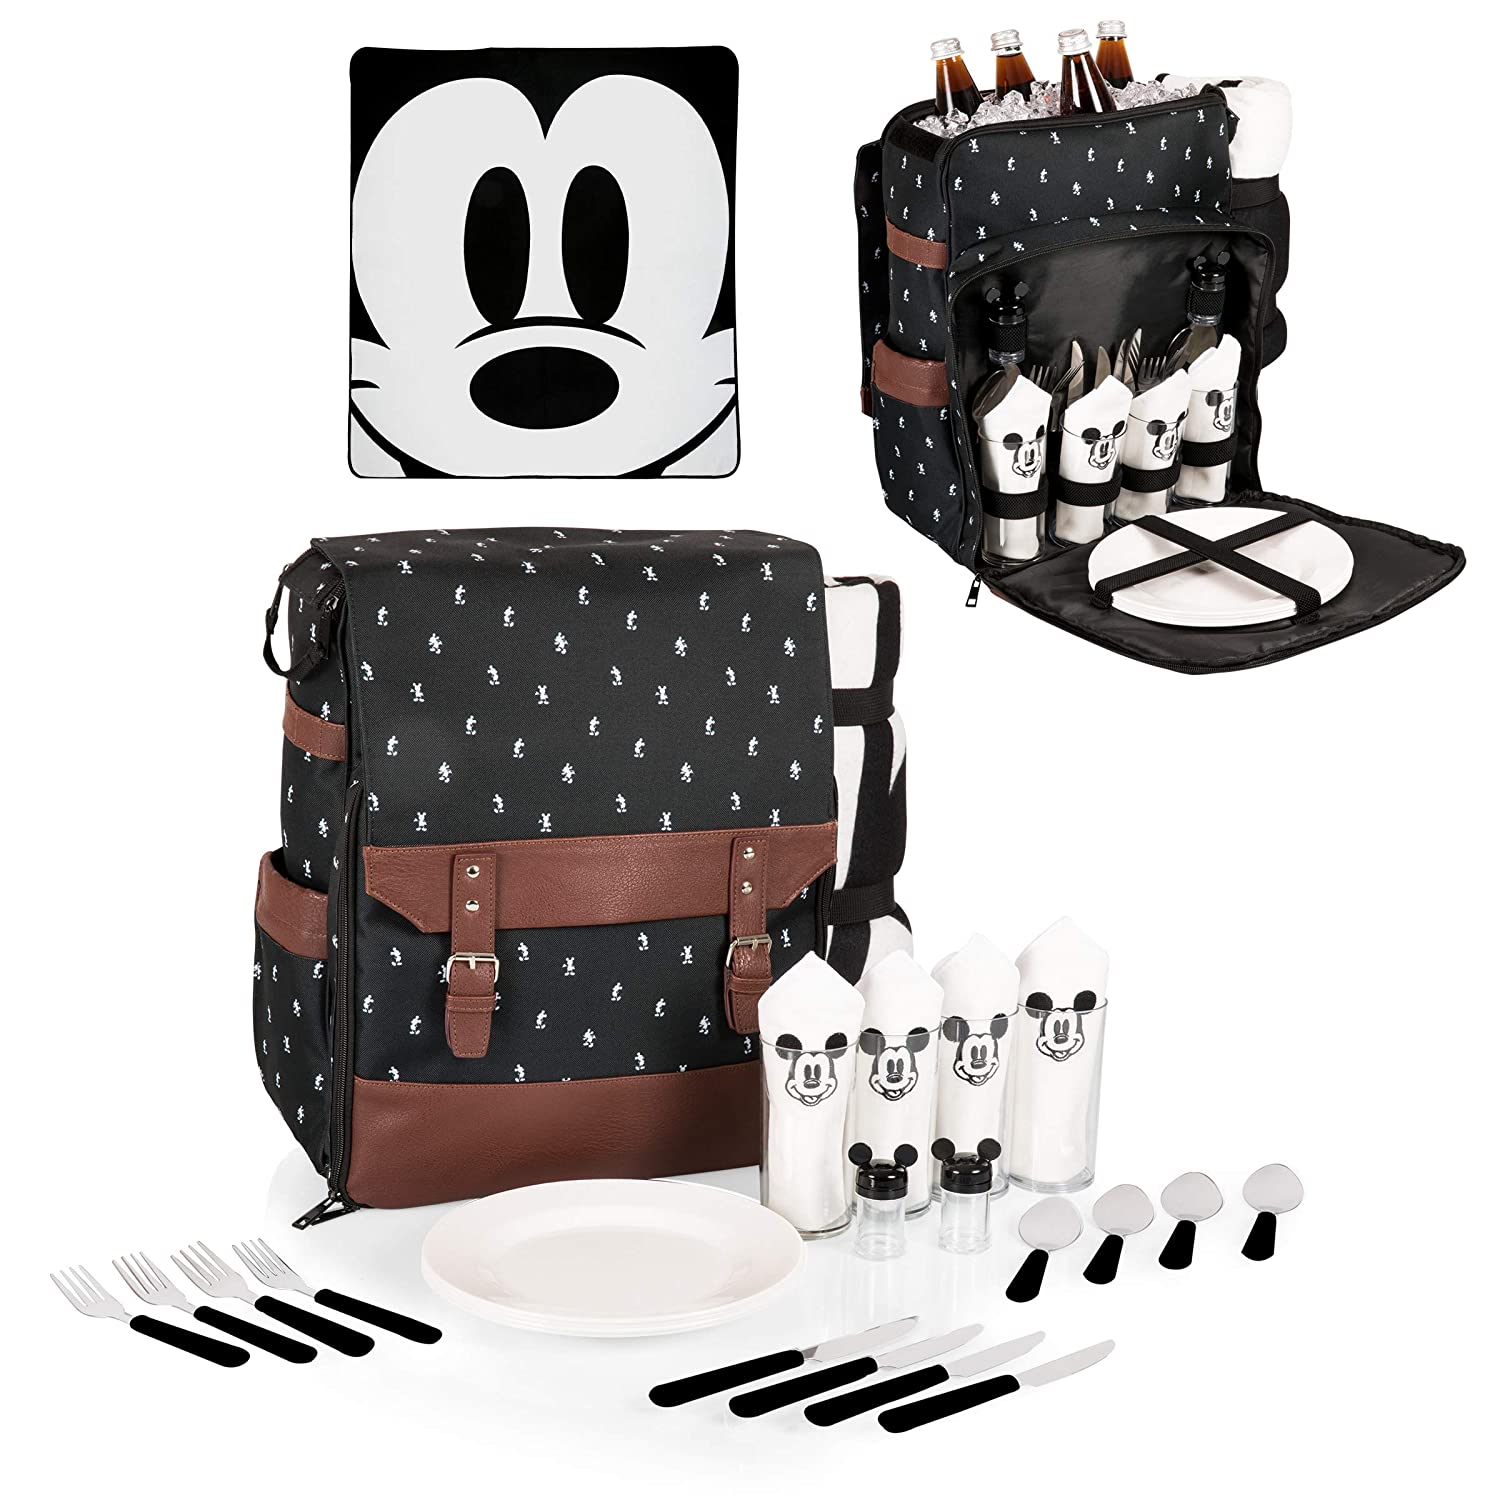 3ae5d612835 Amazon.com  Disney Classics Mickey Mouse Insulated Picnic Backpack with  Service for Four  Sports   Outdoors